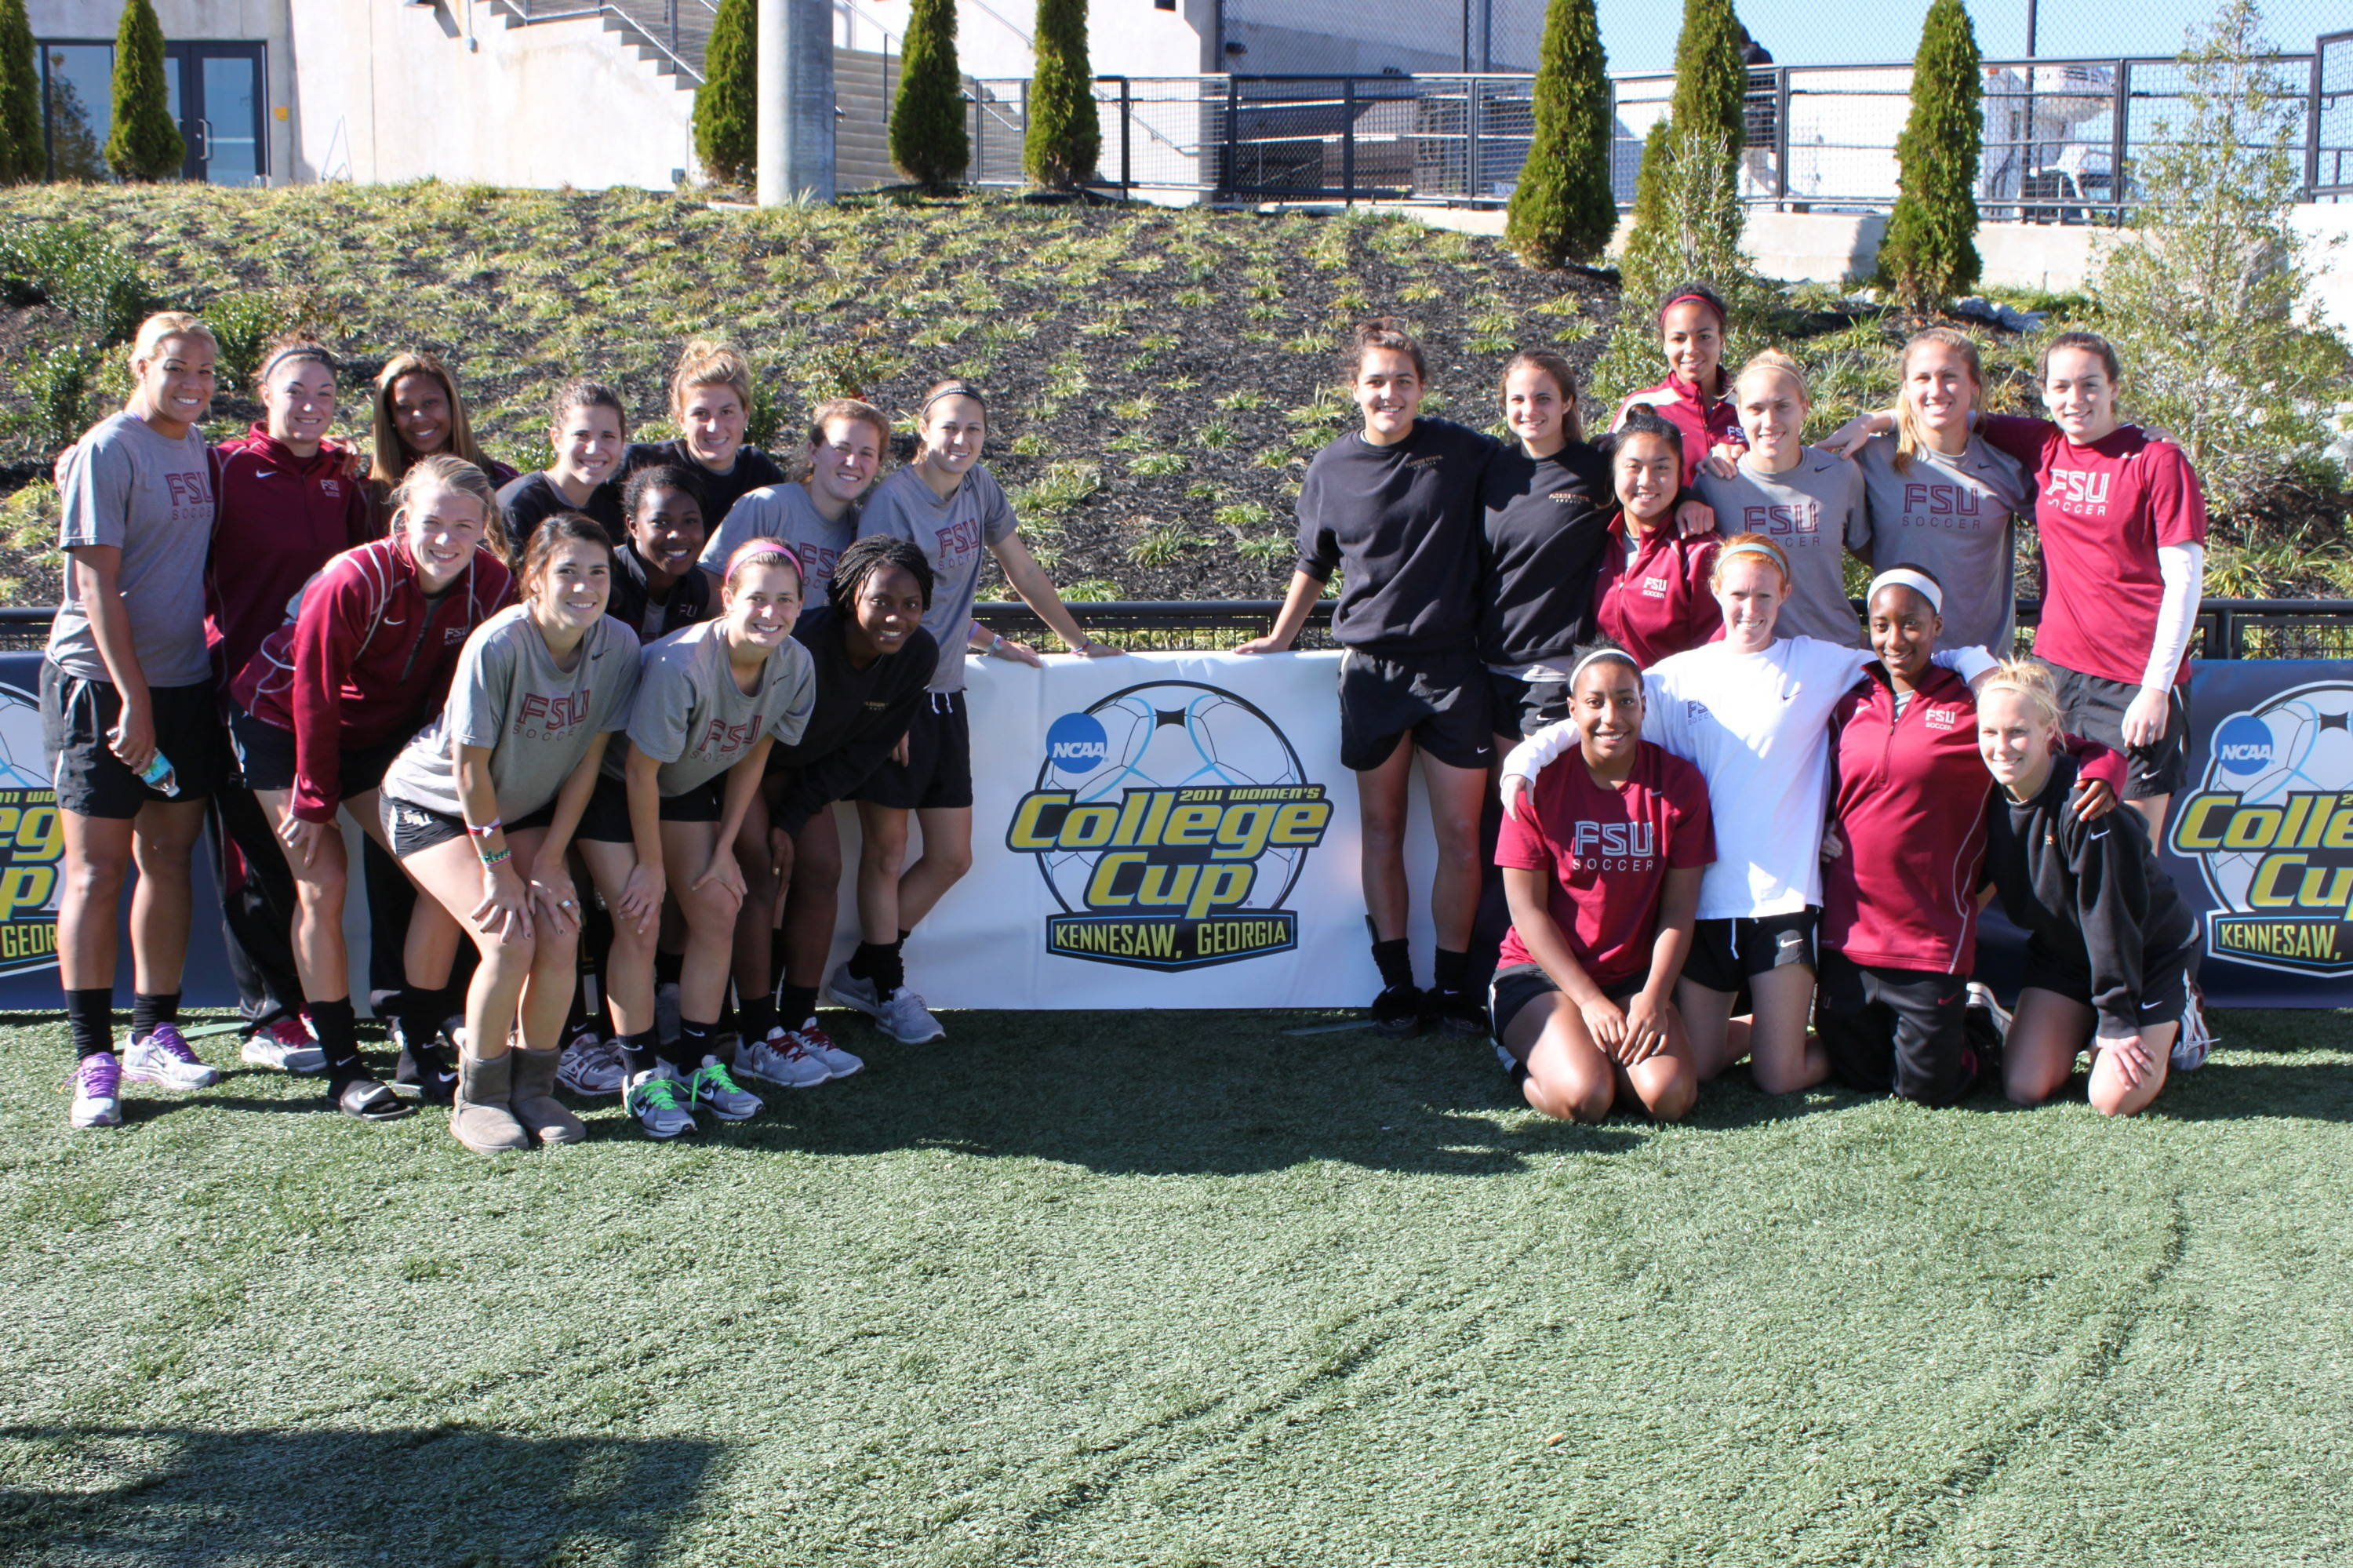 The team finds a shot with the College Cup logo.